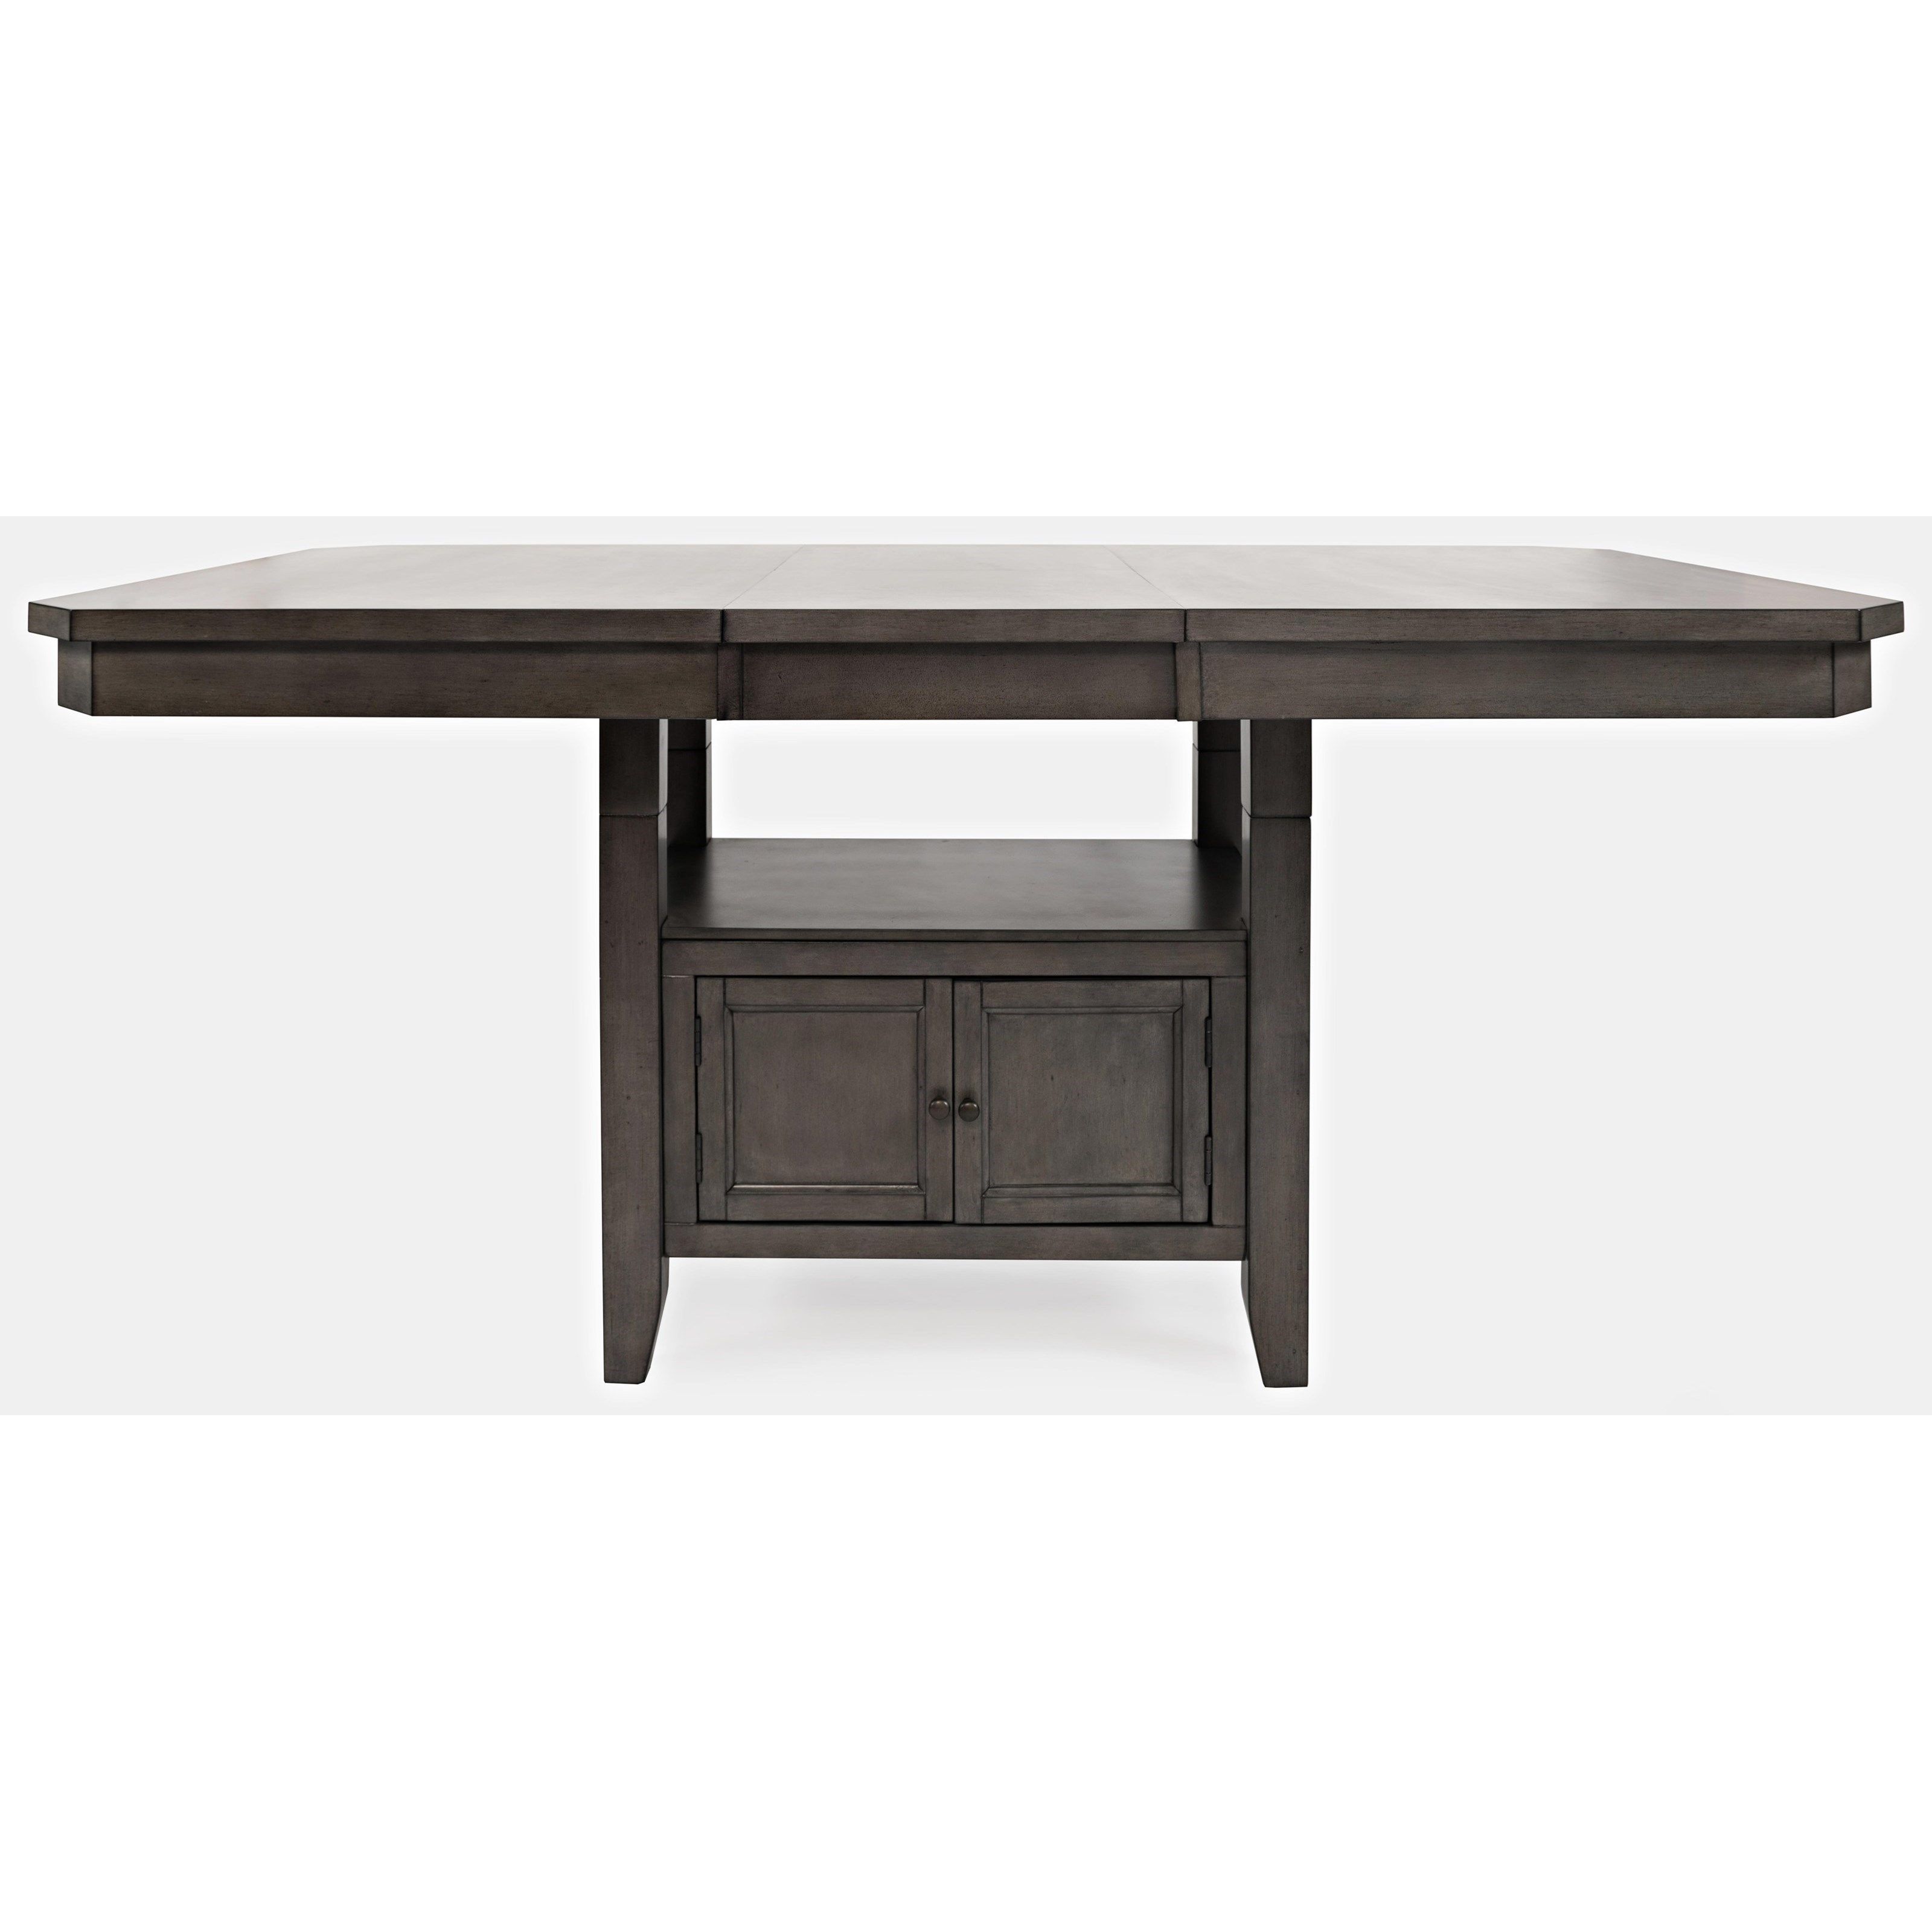 Manchester High/Low Rectangle Dining Table by Jofran at Jofran